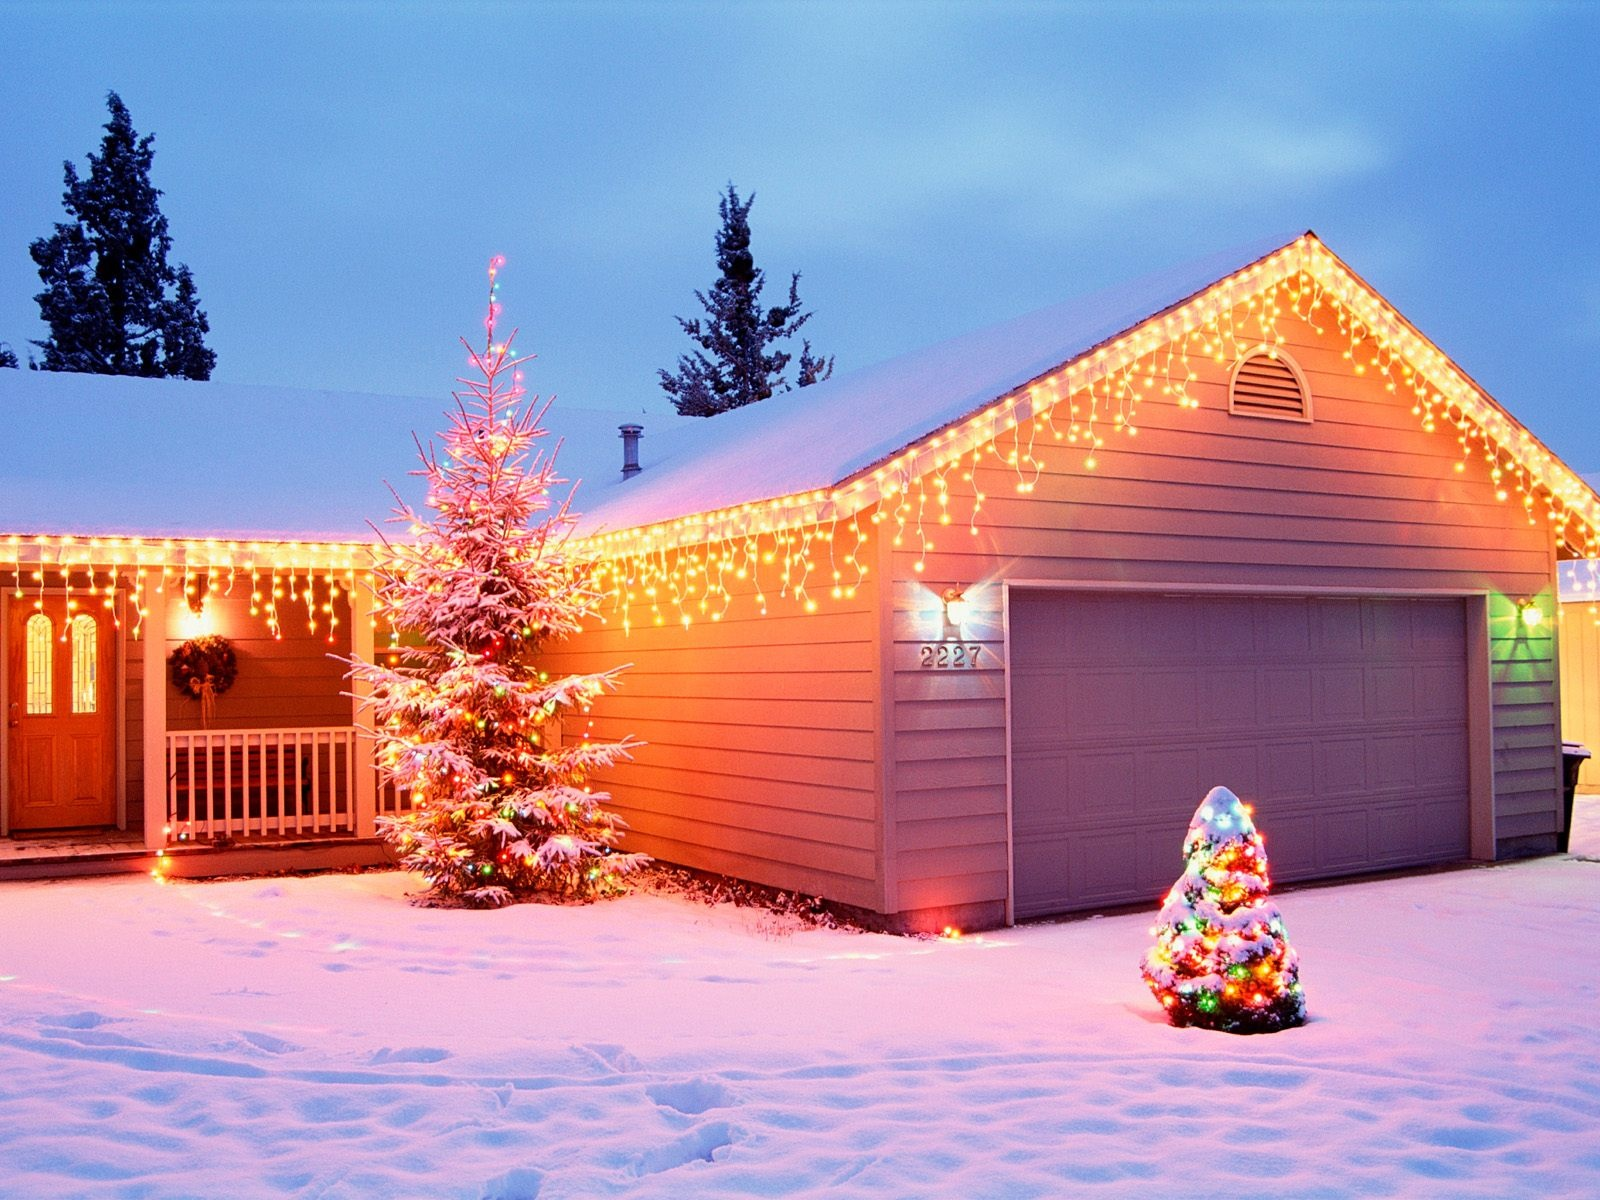 1600x1200 christmas house decorations desktop pc and mac for Christmas house decorations